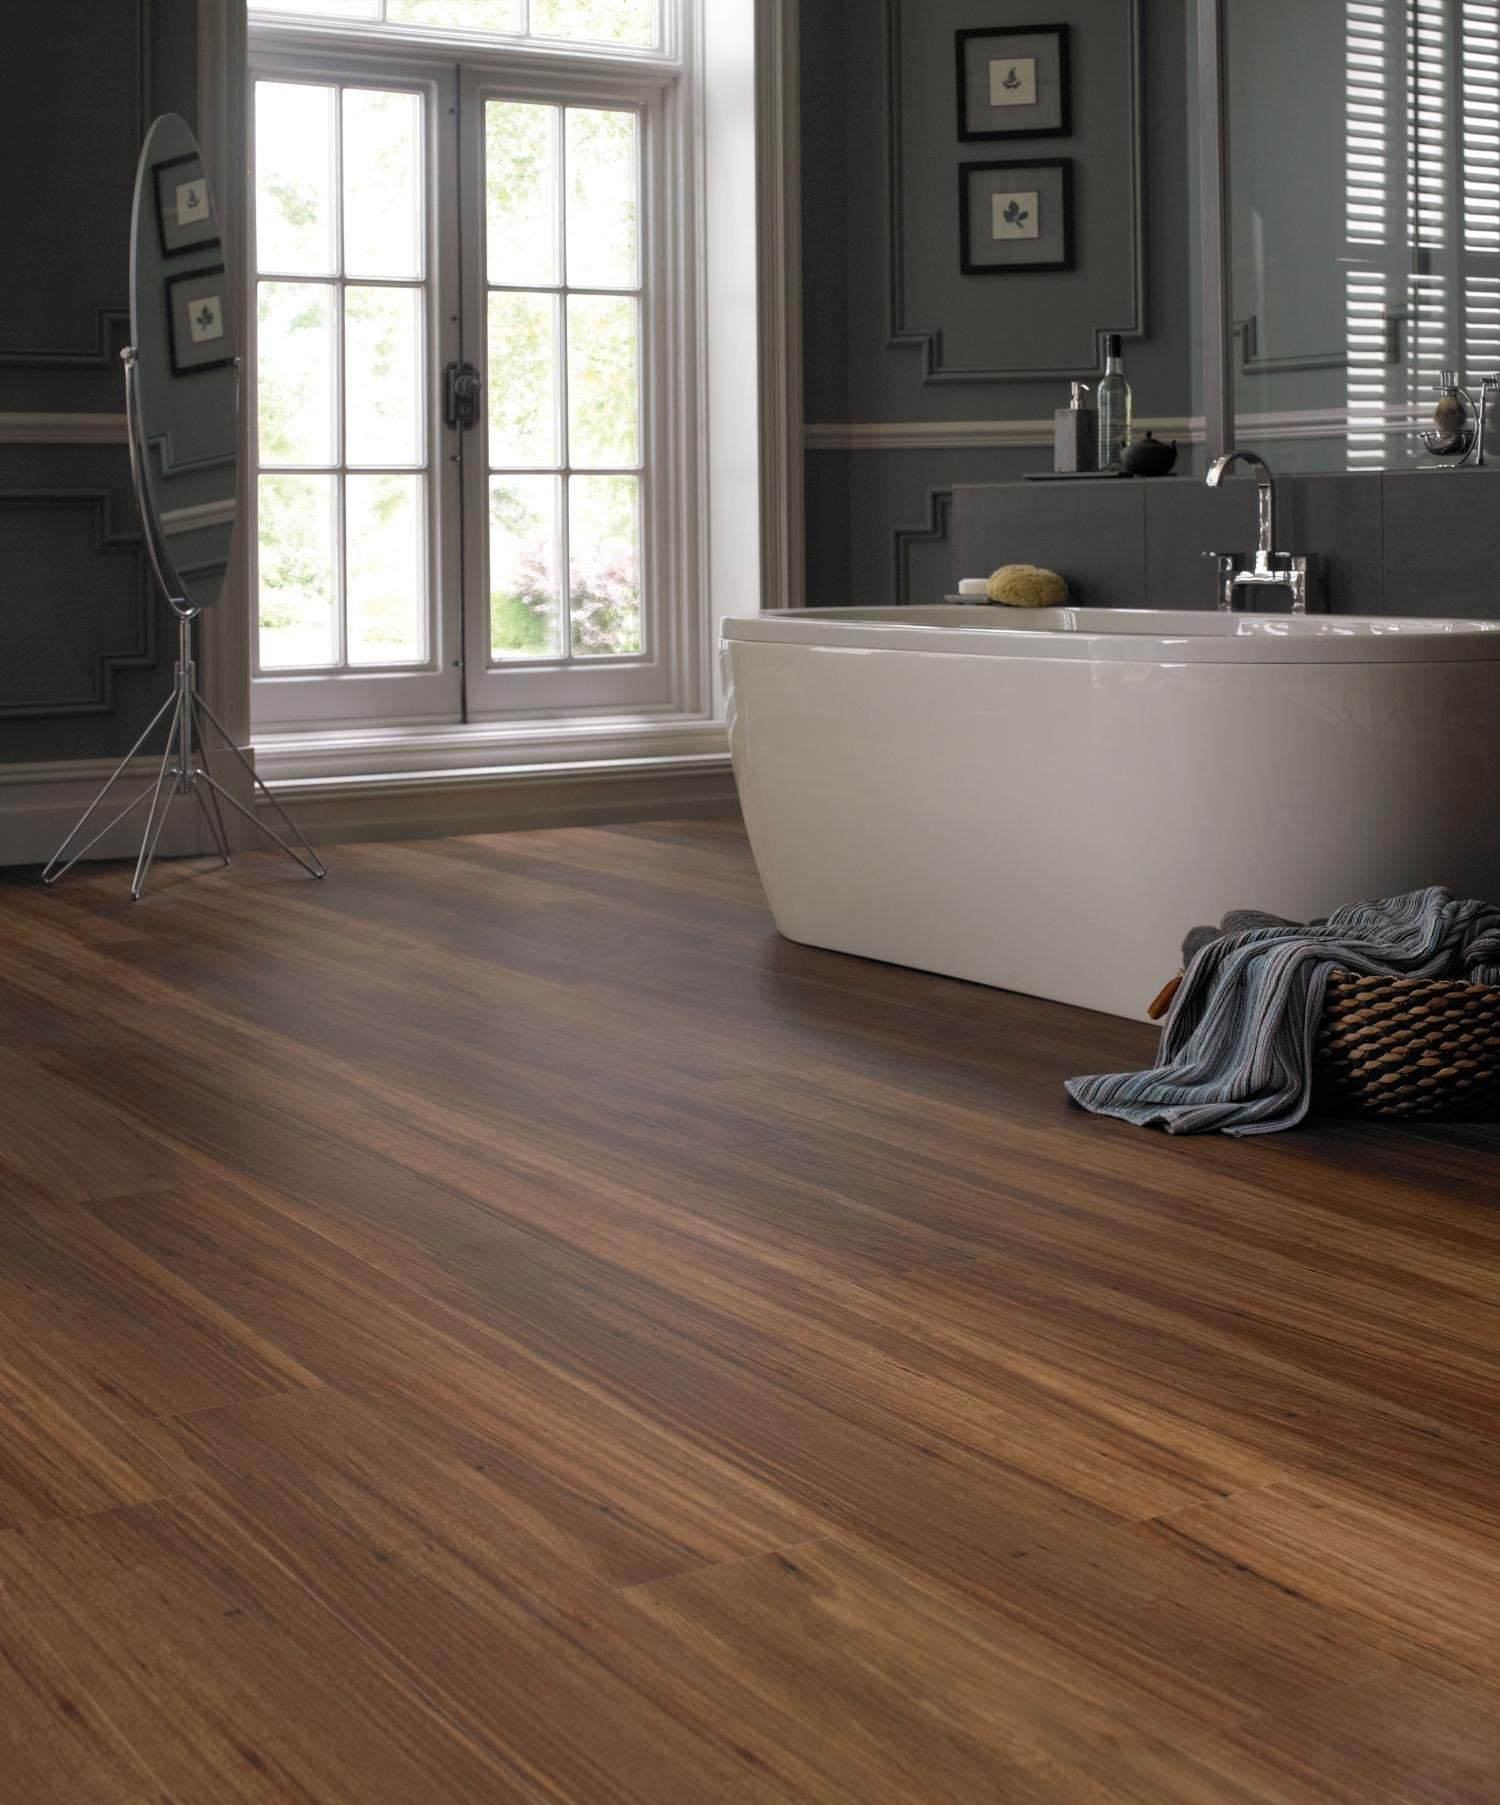 Diablo flooring inc karndean luxury vinyl flooring for Luxury laminate